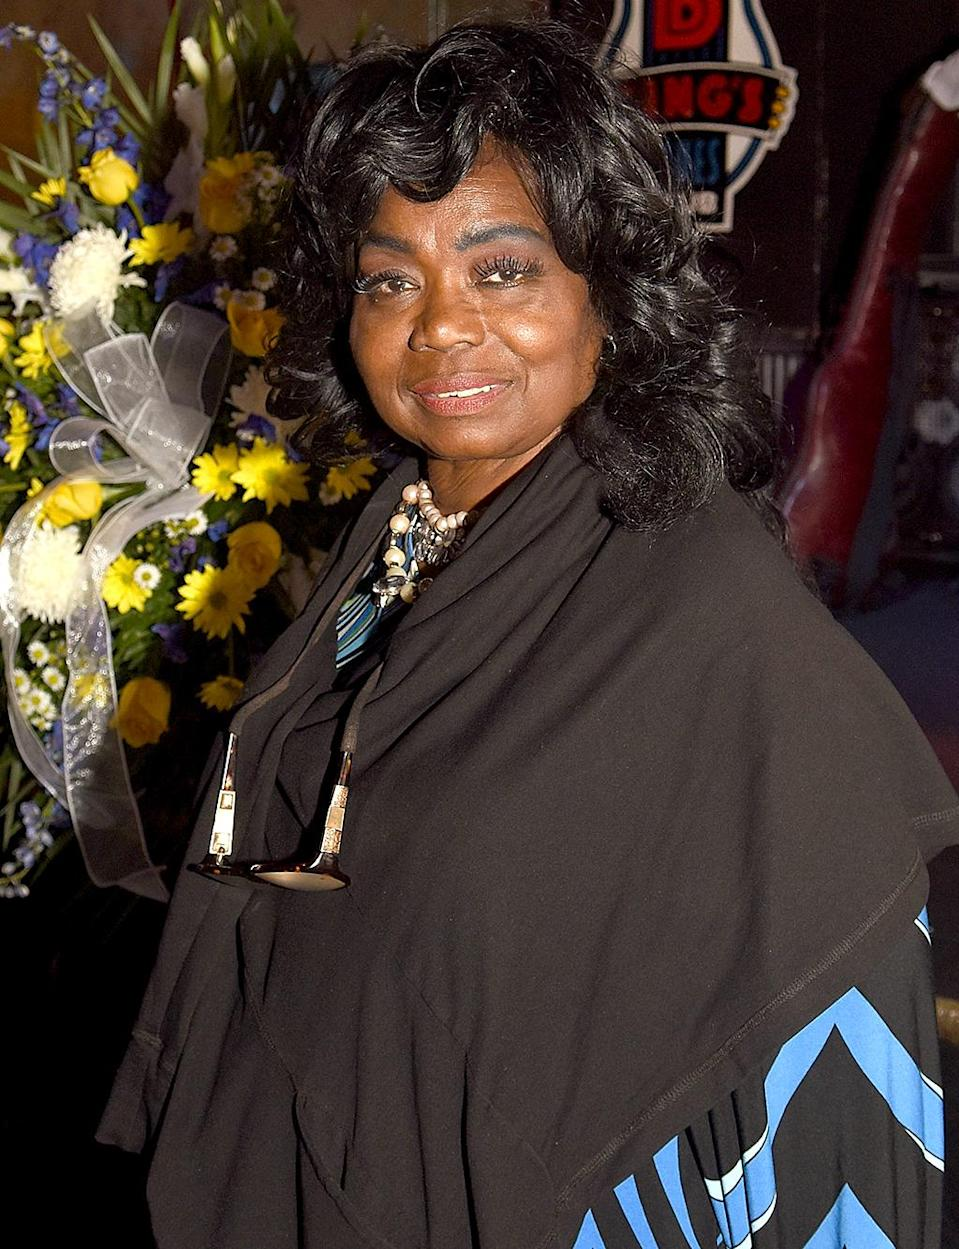 """Blues/gospel singer Ruby Wilson was a fixture on the Memphis music scene for more than 40 years and known as """"the queen of Beale street."""" She died Aug. 12 after suffering a heart attack. She was 68 years old. (Photo: Duffy-Marie Arnoult/Getty Images)"""